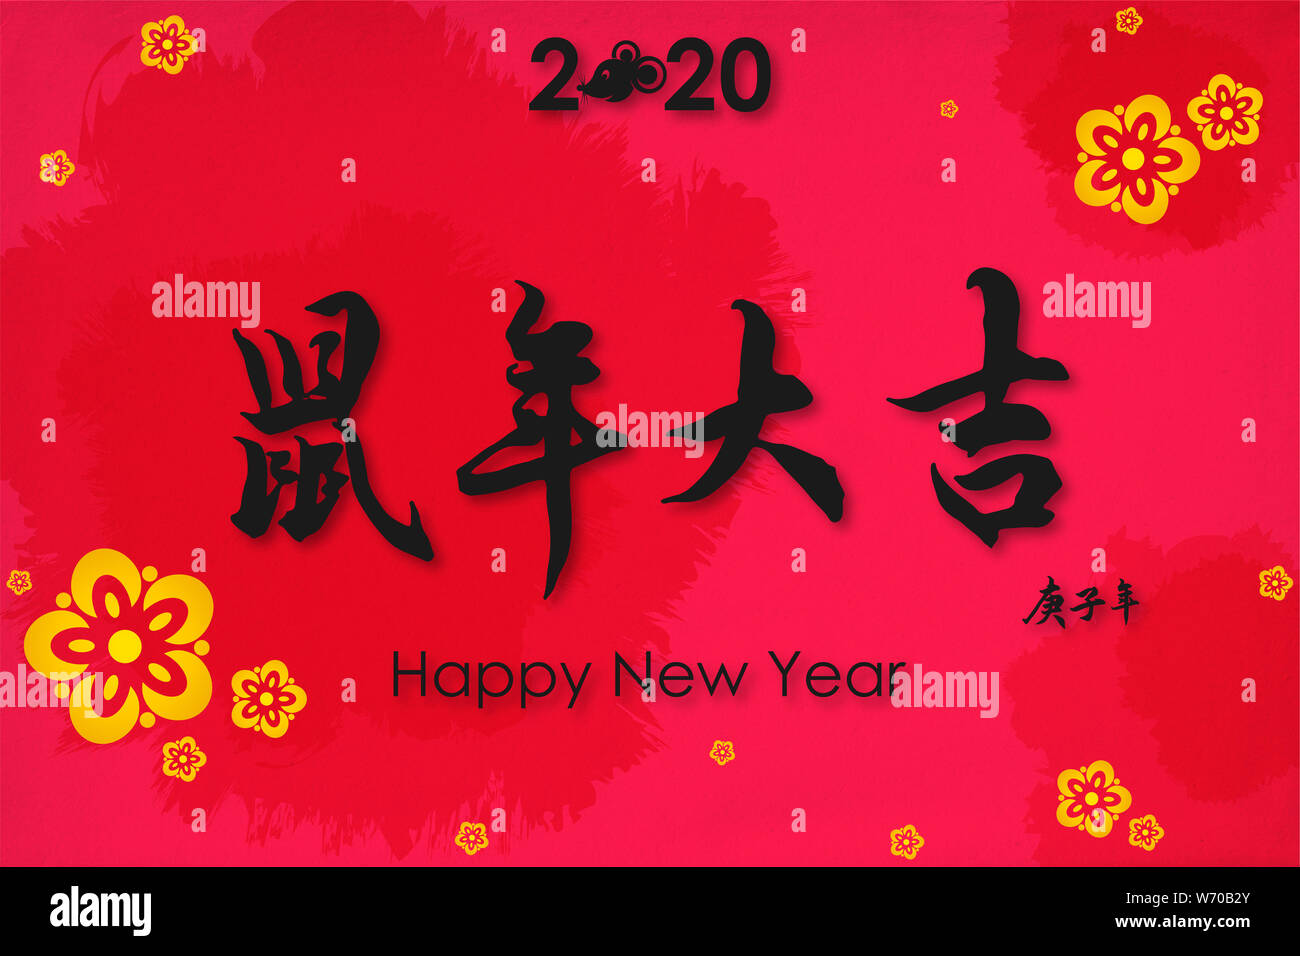 Chinese New Year 2020 Year Of The.Chinese New Year 2020 Year Of The Rat Red Paper Cut Rat